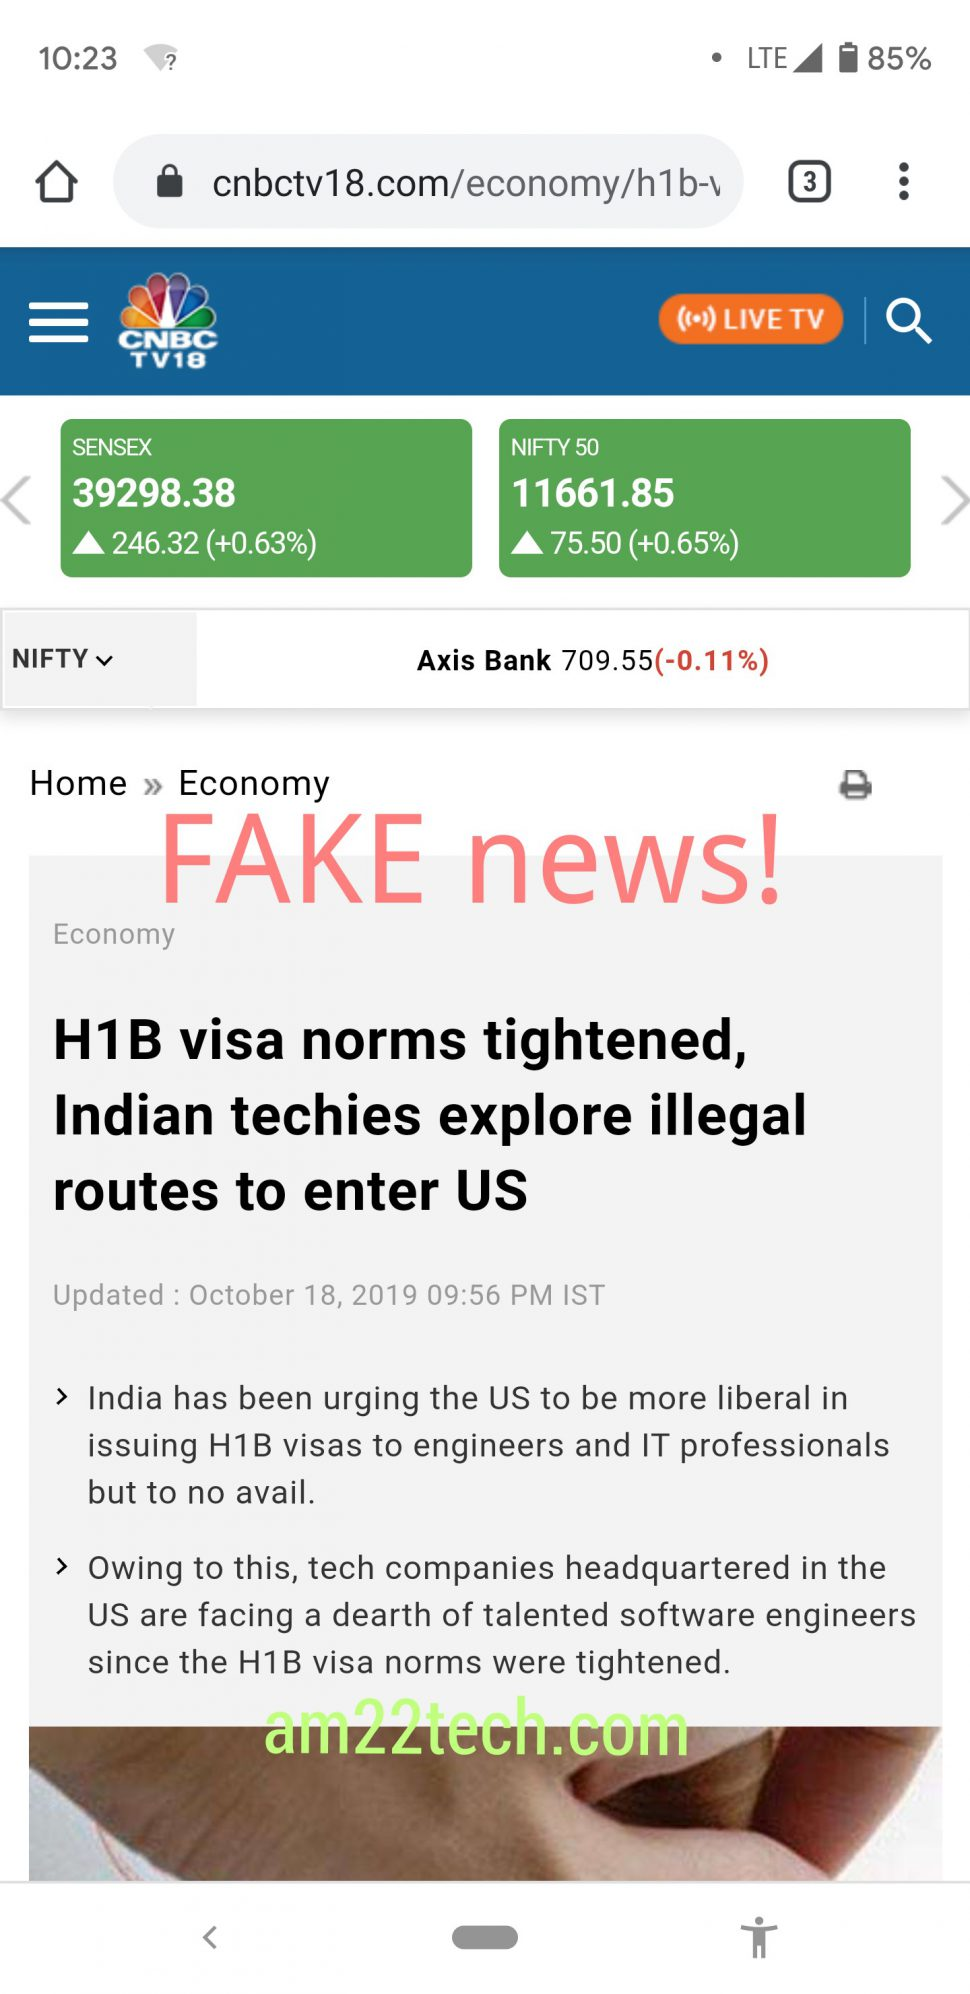 CNBC claims Indian techies will explore illegal ways to enter US